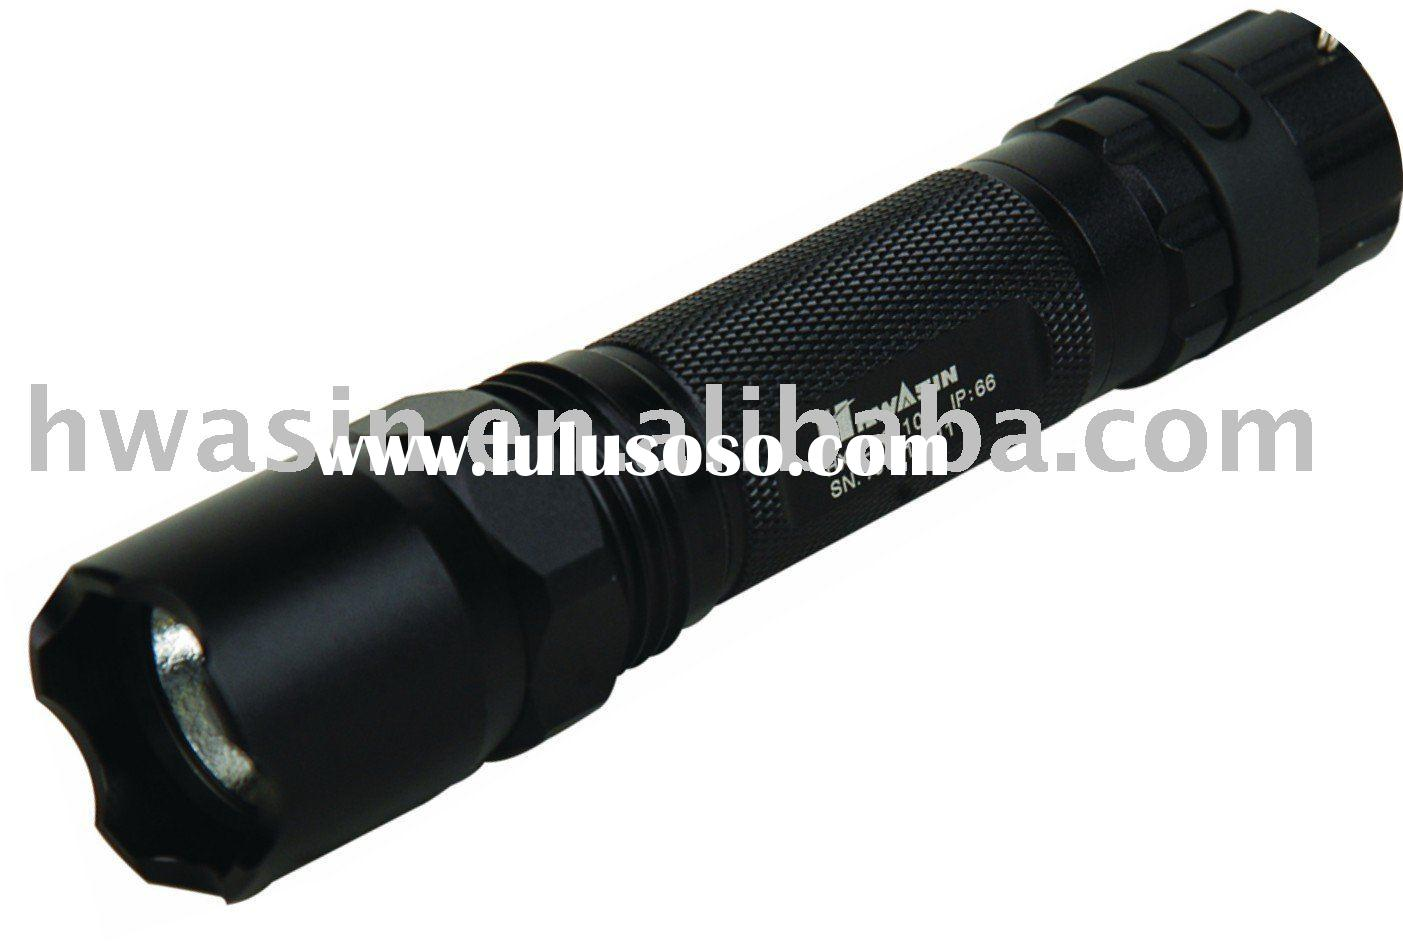 HX-ZB6110 Police Use Intense Flashlight, White-light LED with super-high brightness and power